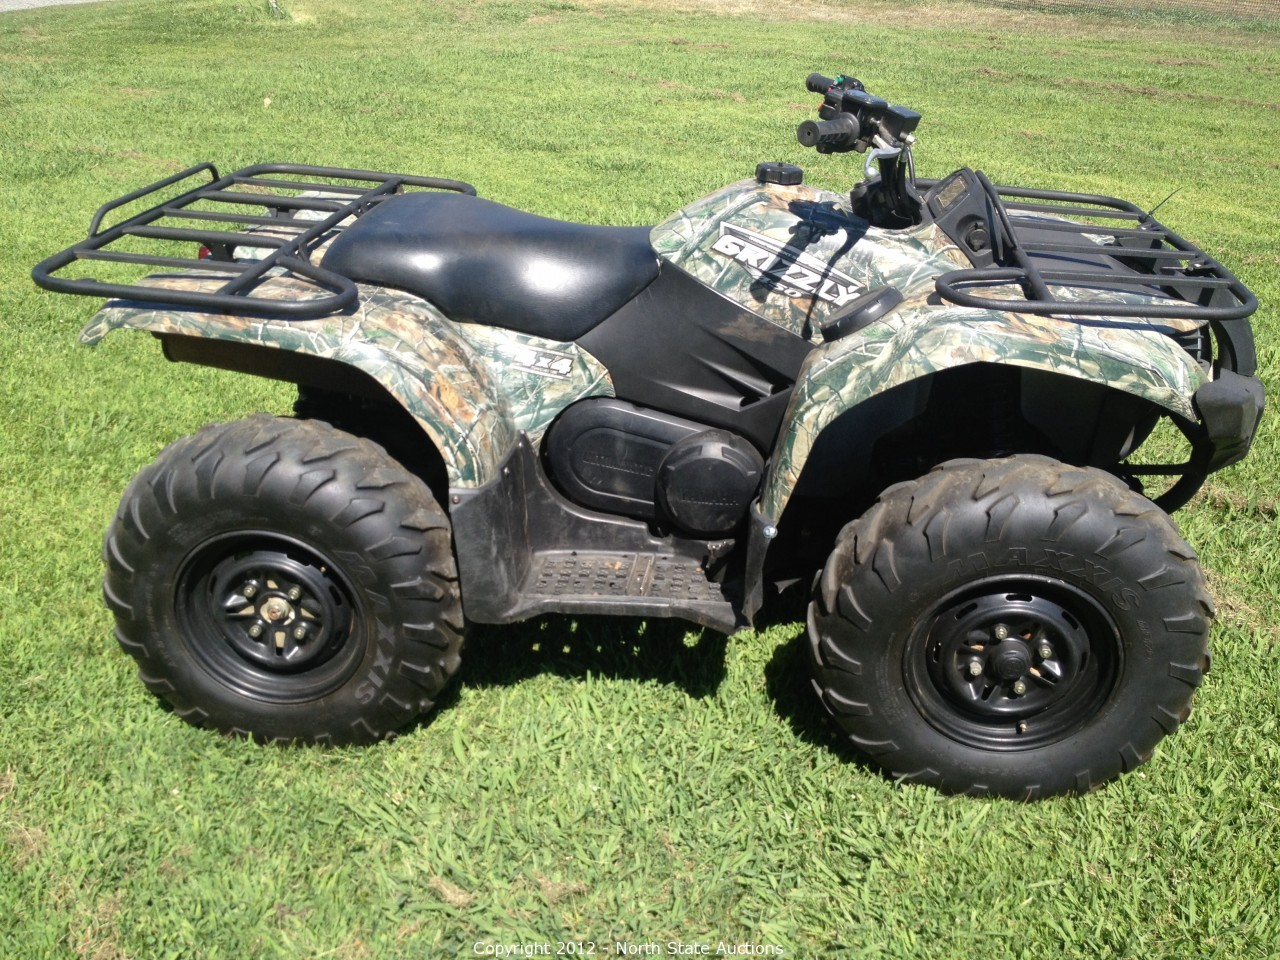 North state auctions auction motorcycle extravaganza for Yamaha grizzly 450 for sale